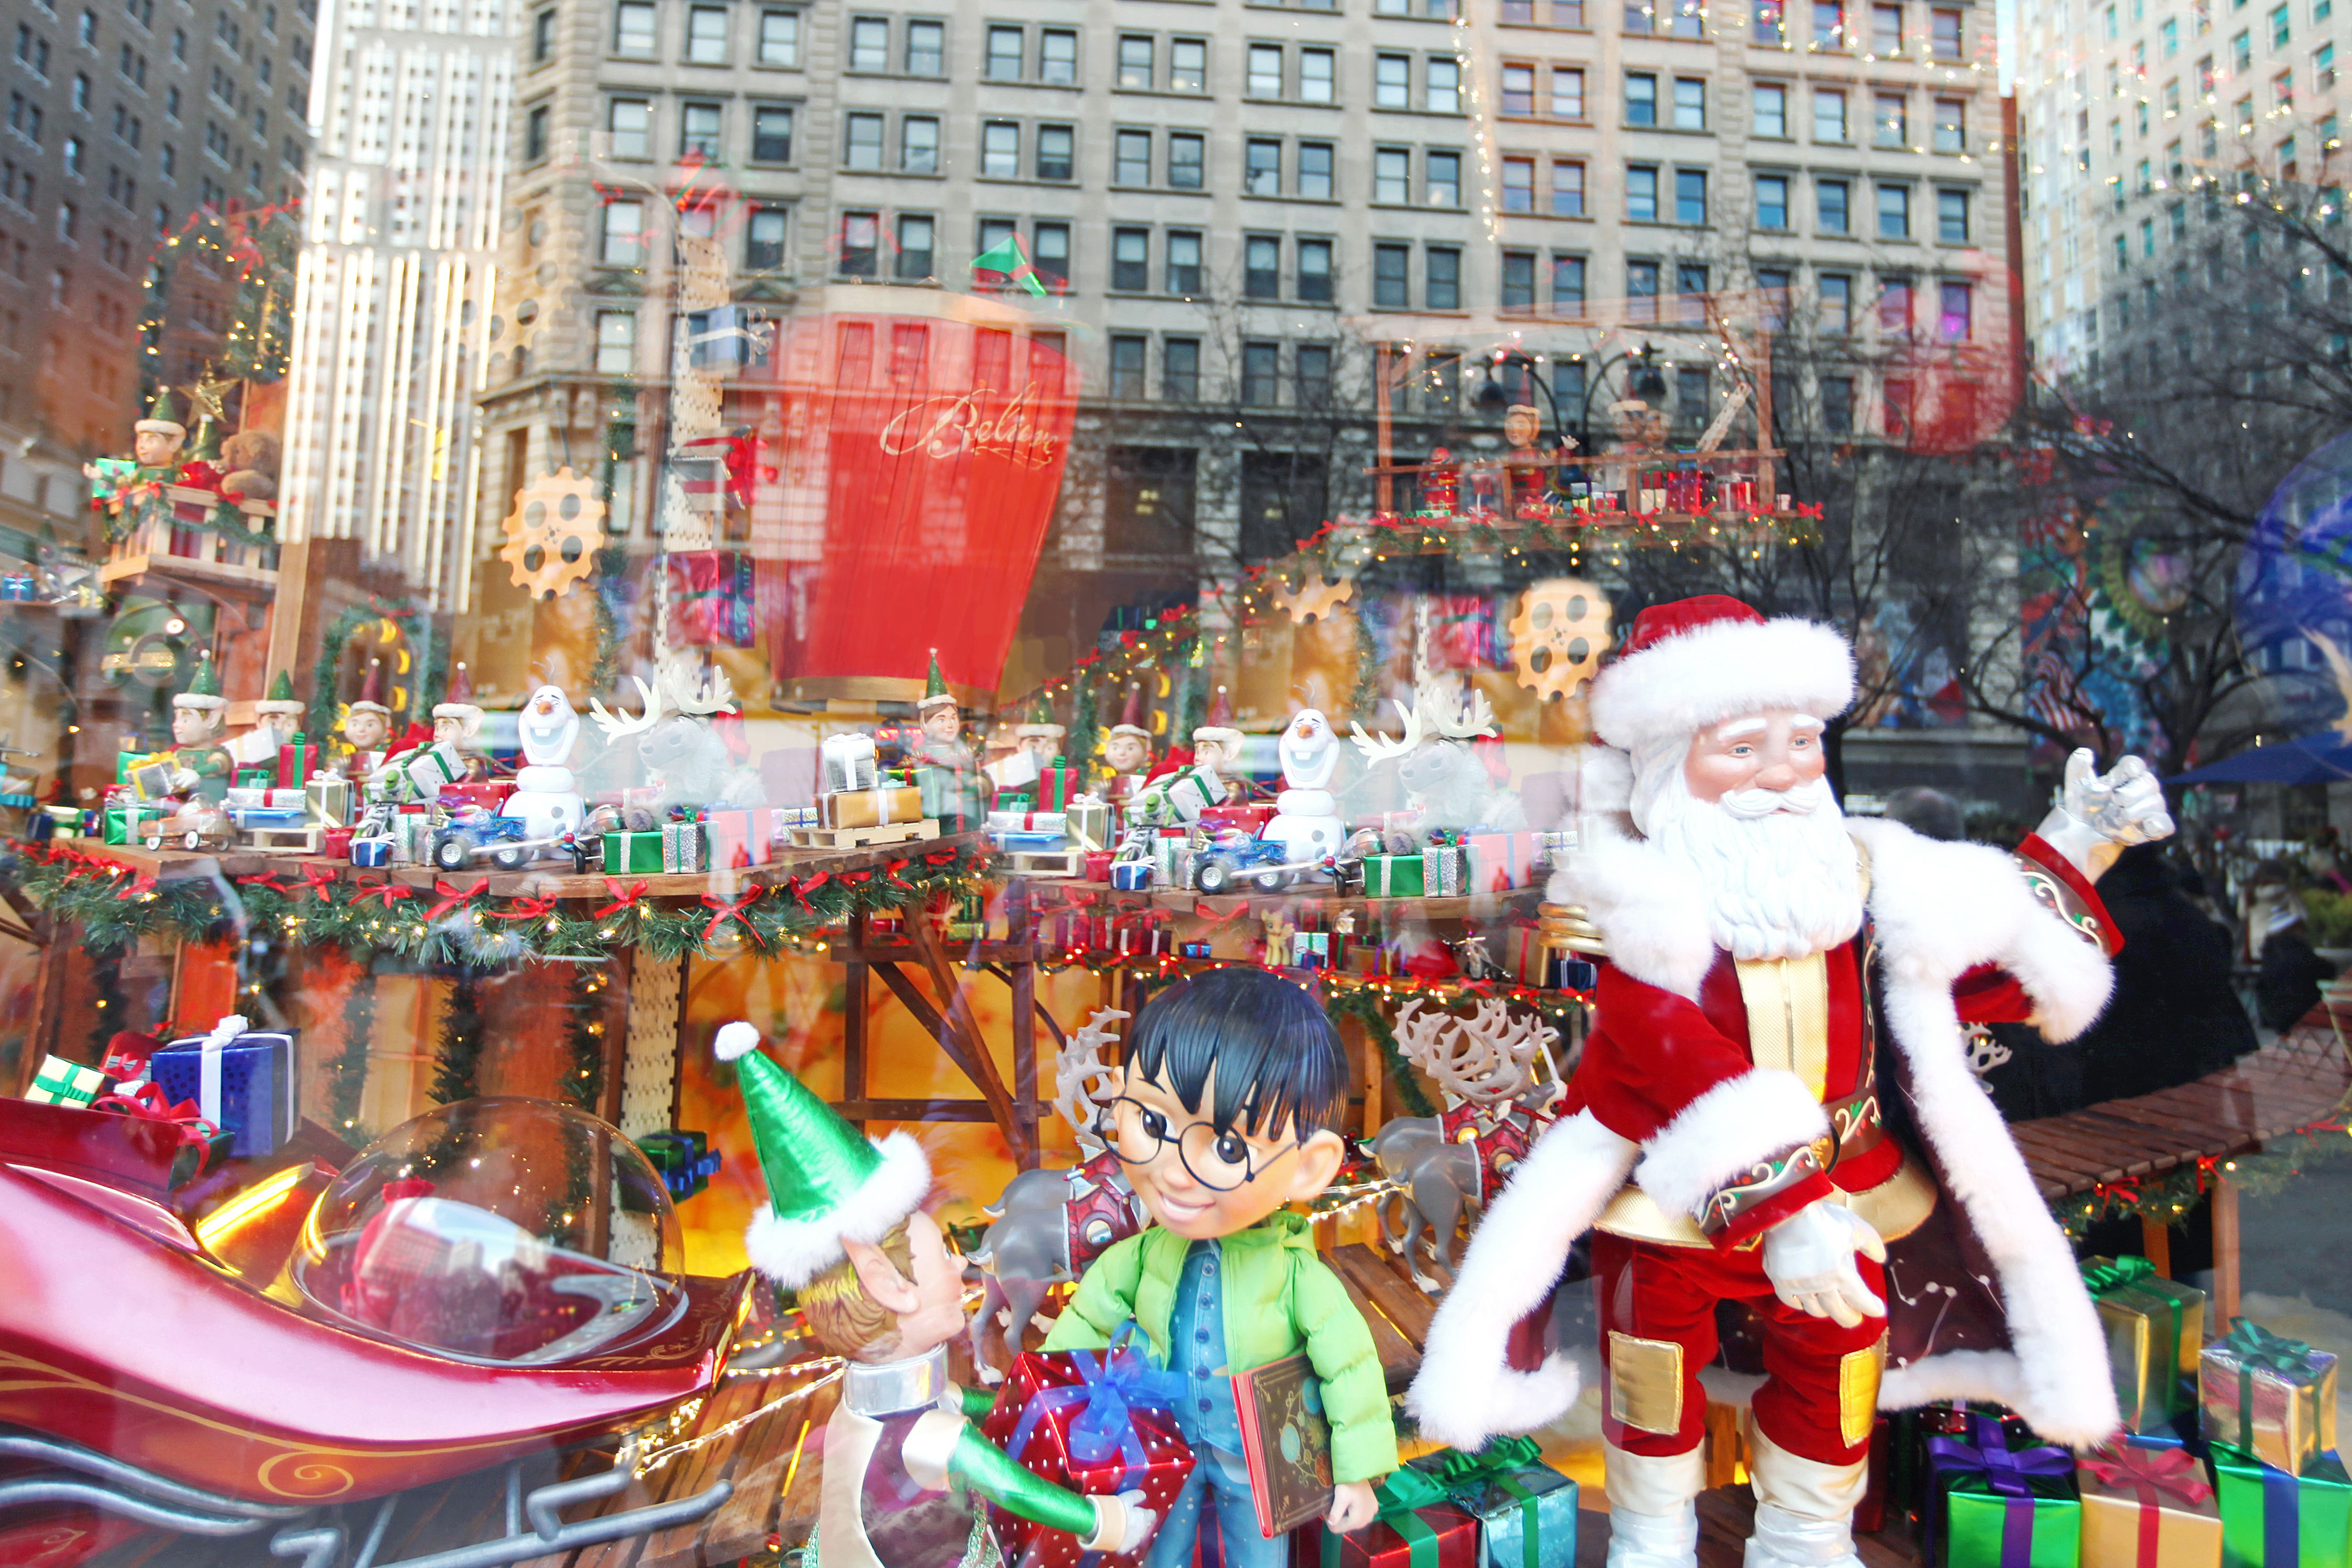 How To Visit Santa At Macy S In New York City